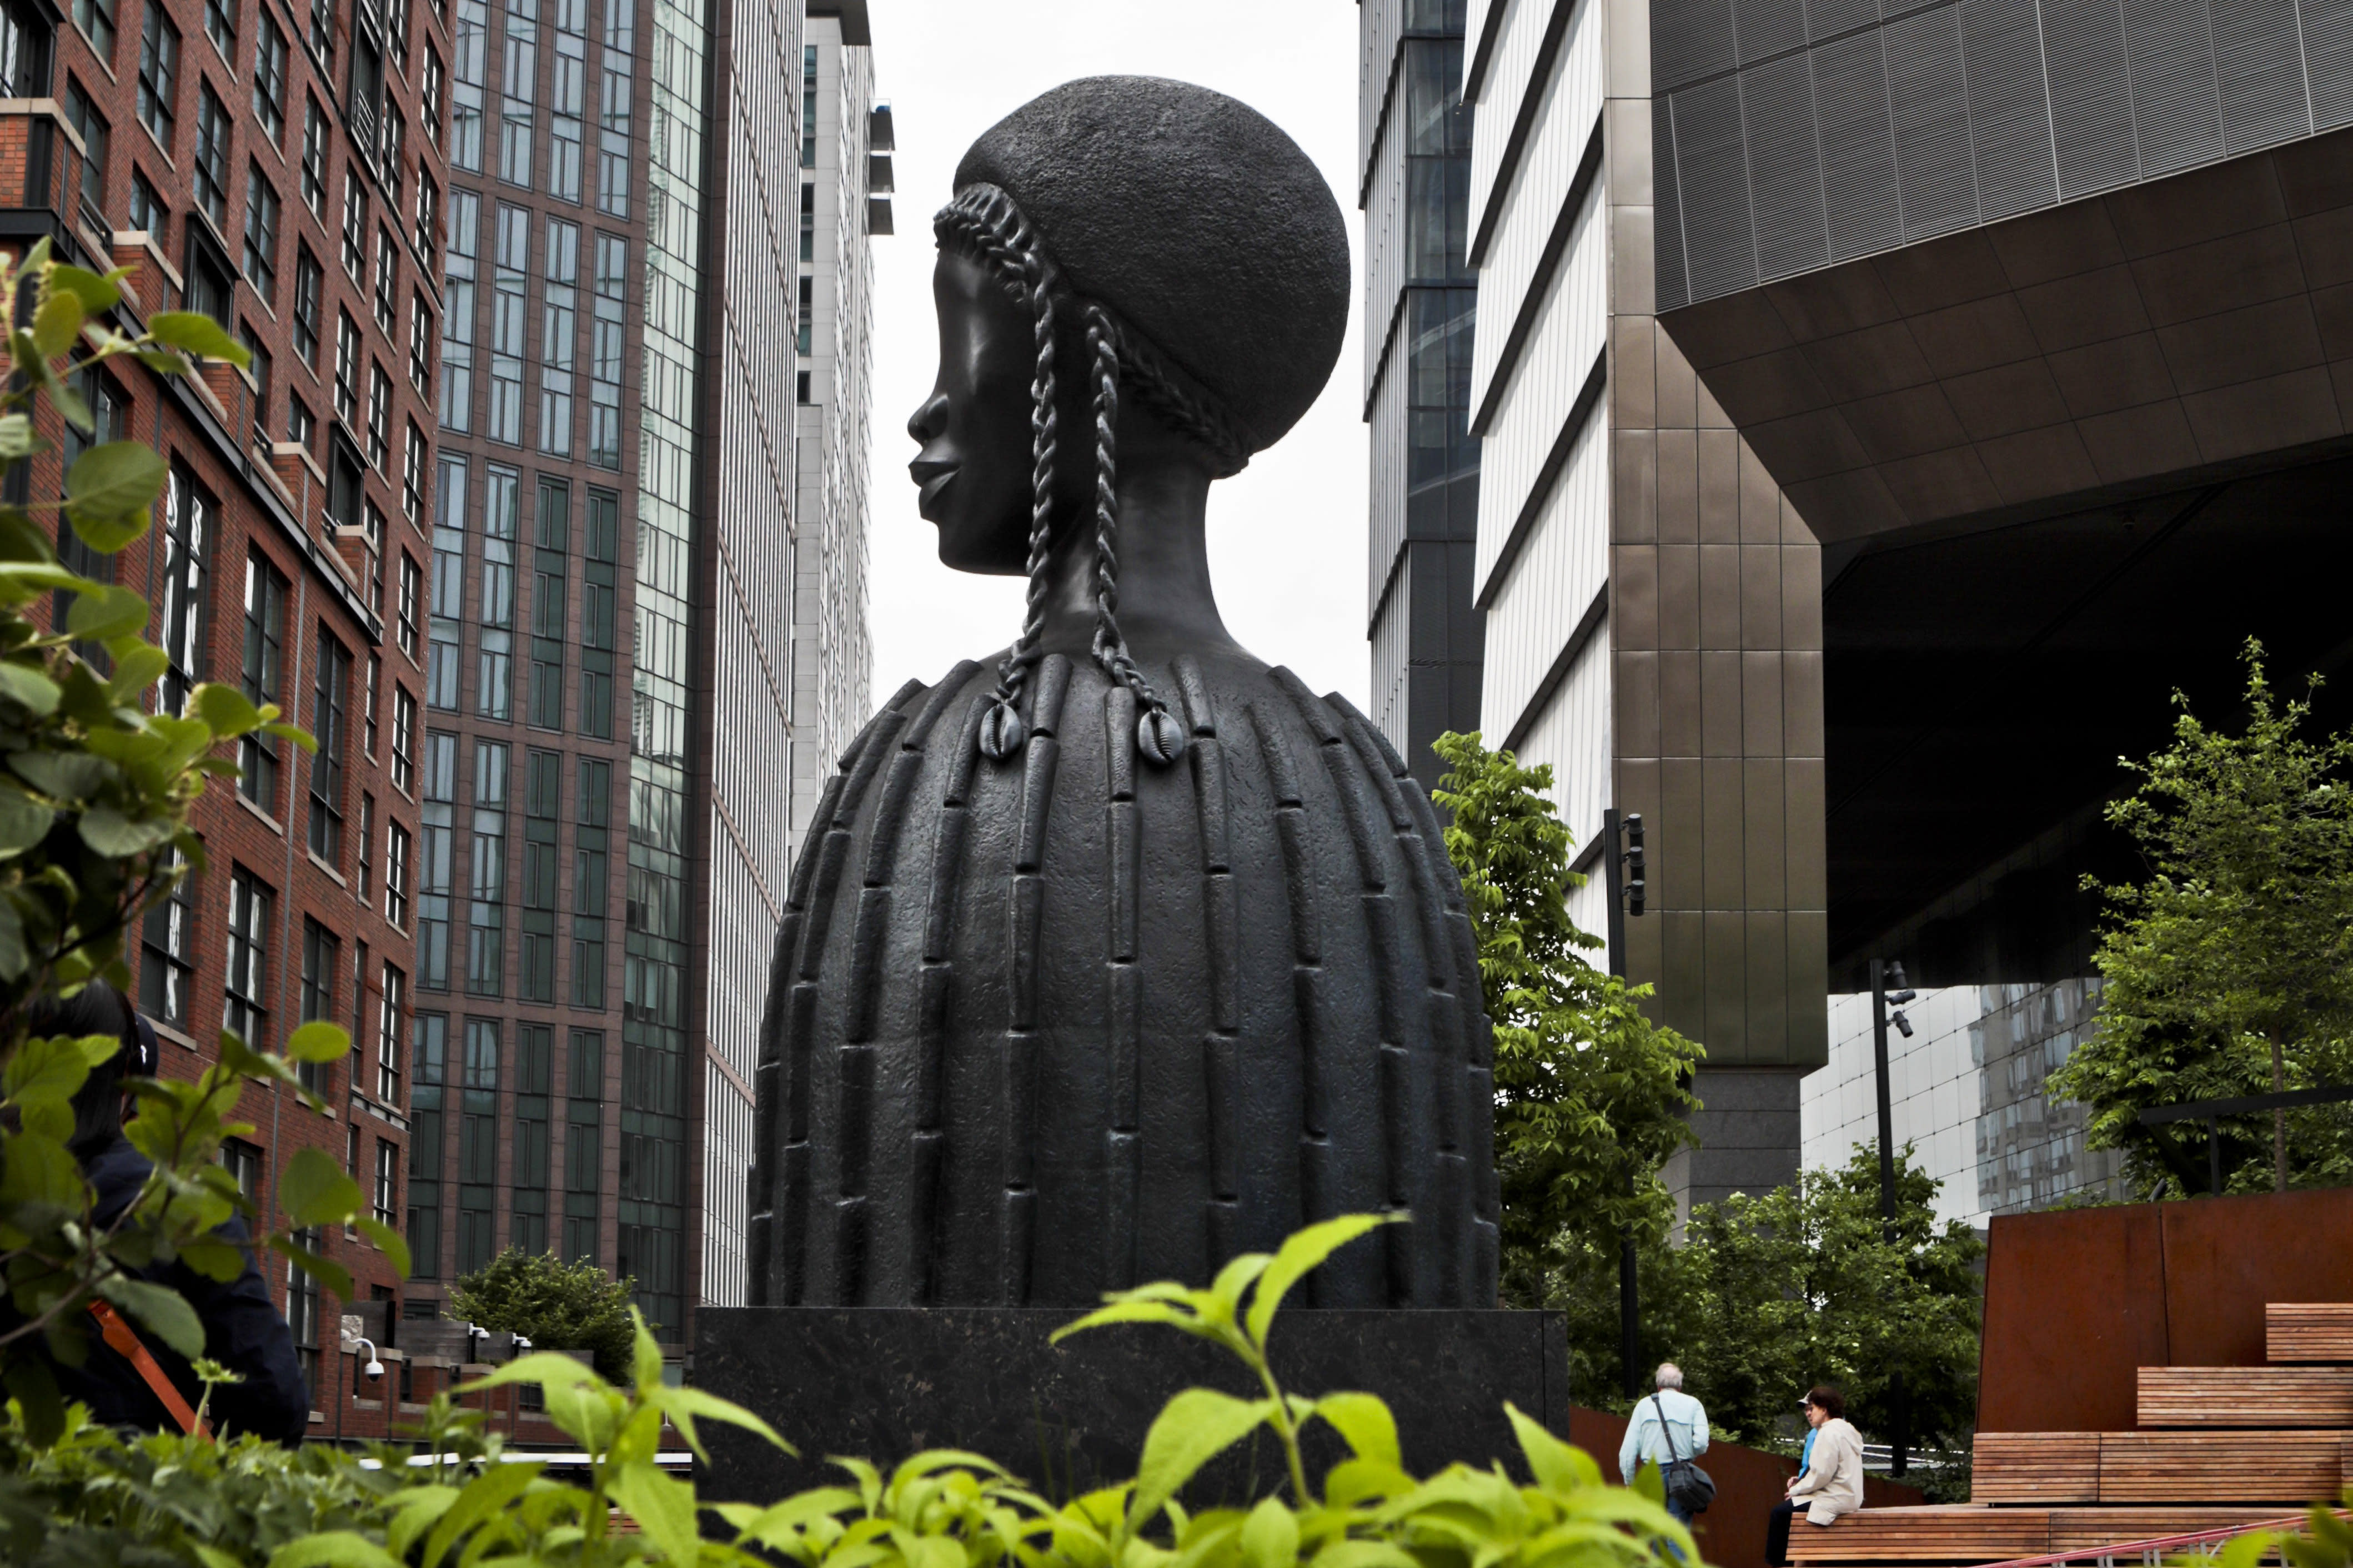 "In this May 29, 2019 , file photo, a bronze bust of a Black woman entitled ""Brick House,"" by Chicago artist Simone Leigh, stands among buildings and vegetation in the High Line park in New York. Leigh will be the first Black woman ever to represent the U.S. at Italy's prestigious Venice Biennale arts festival to be held in 2022. (AP Photo/Bebeto Matthews, File)"